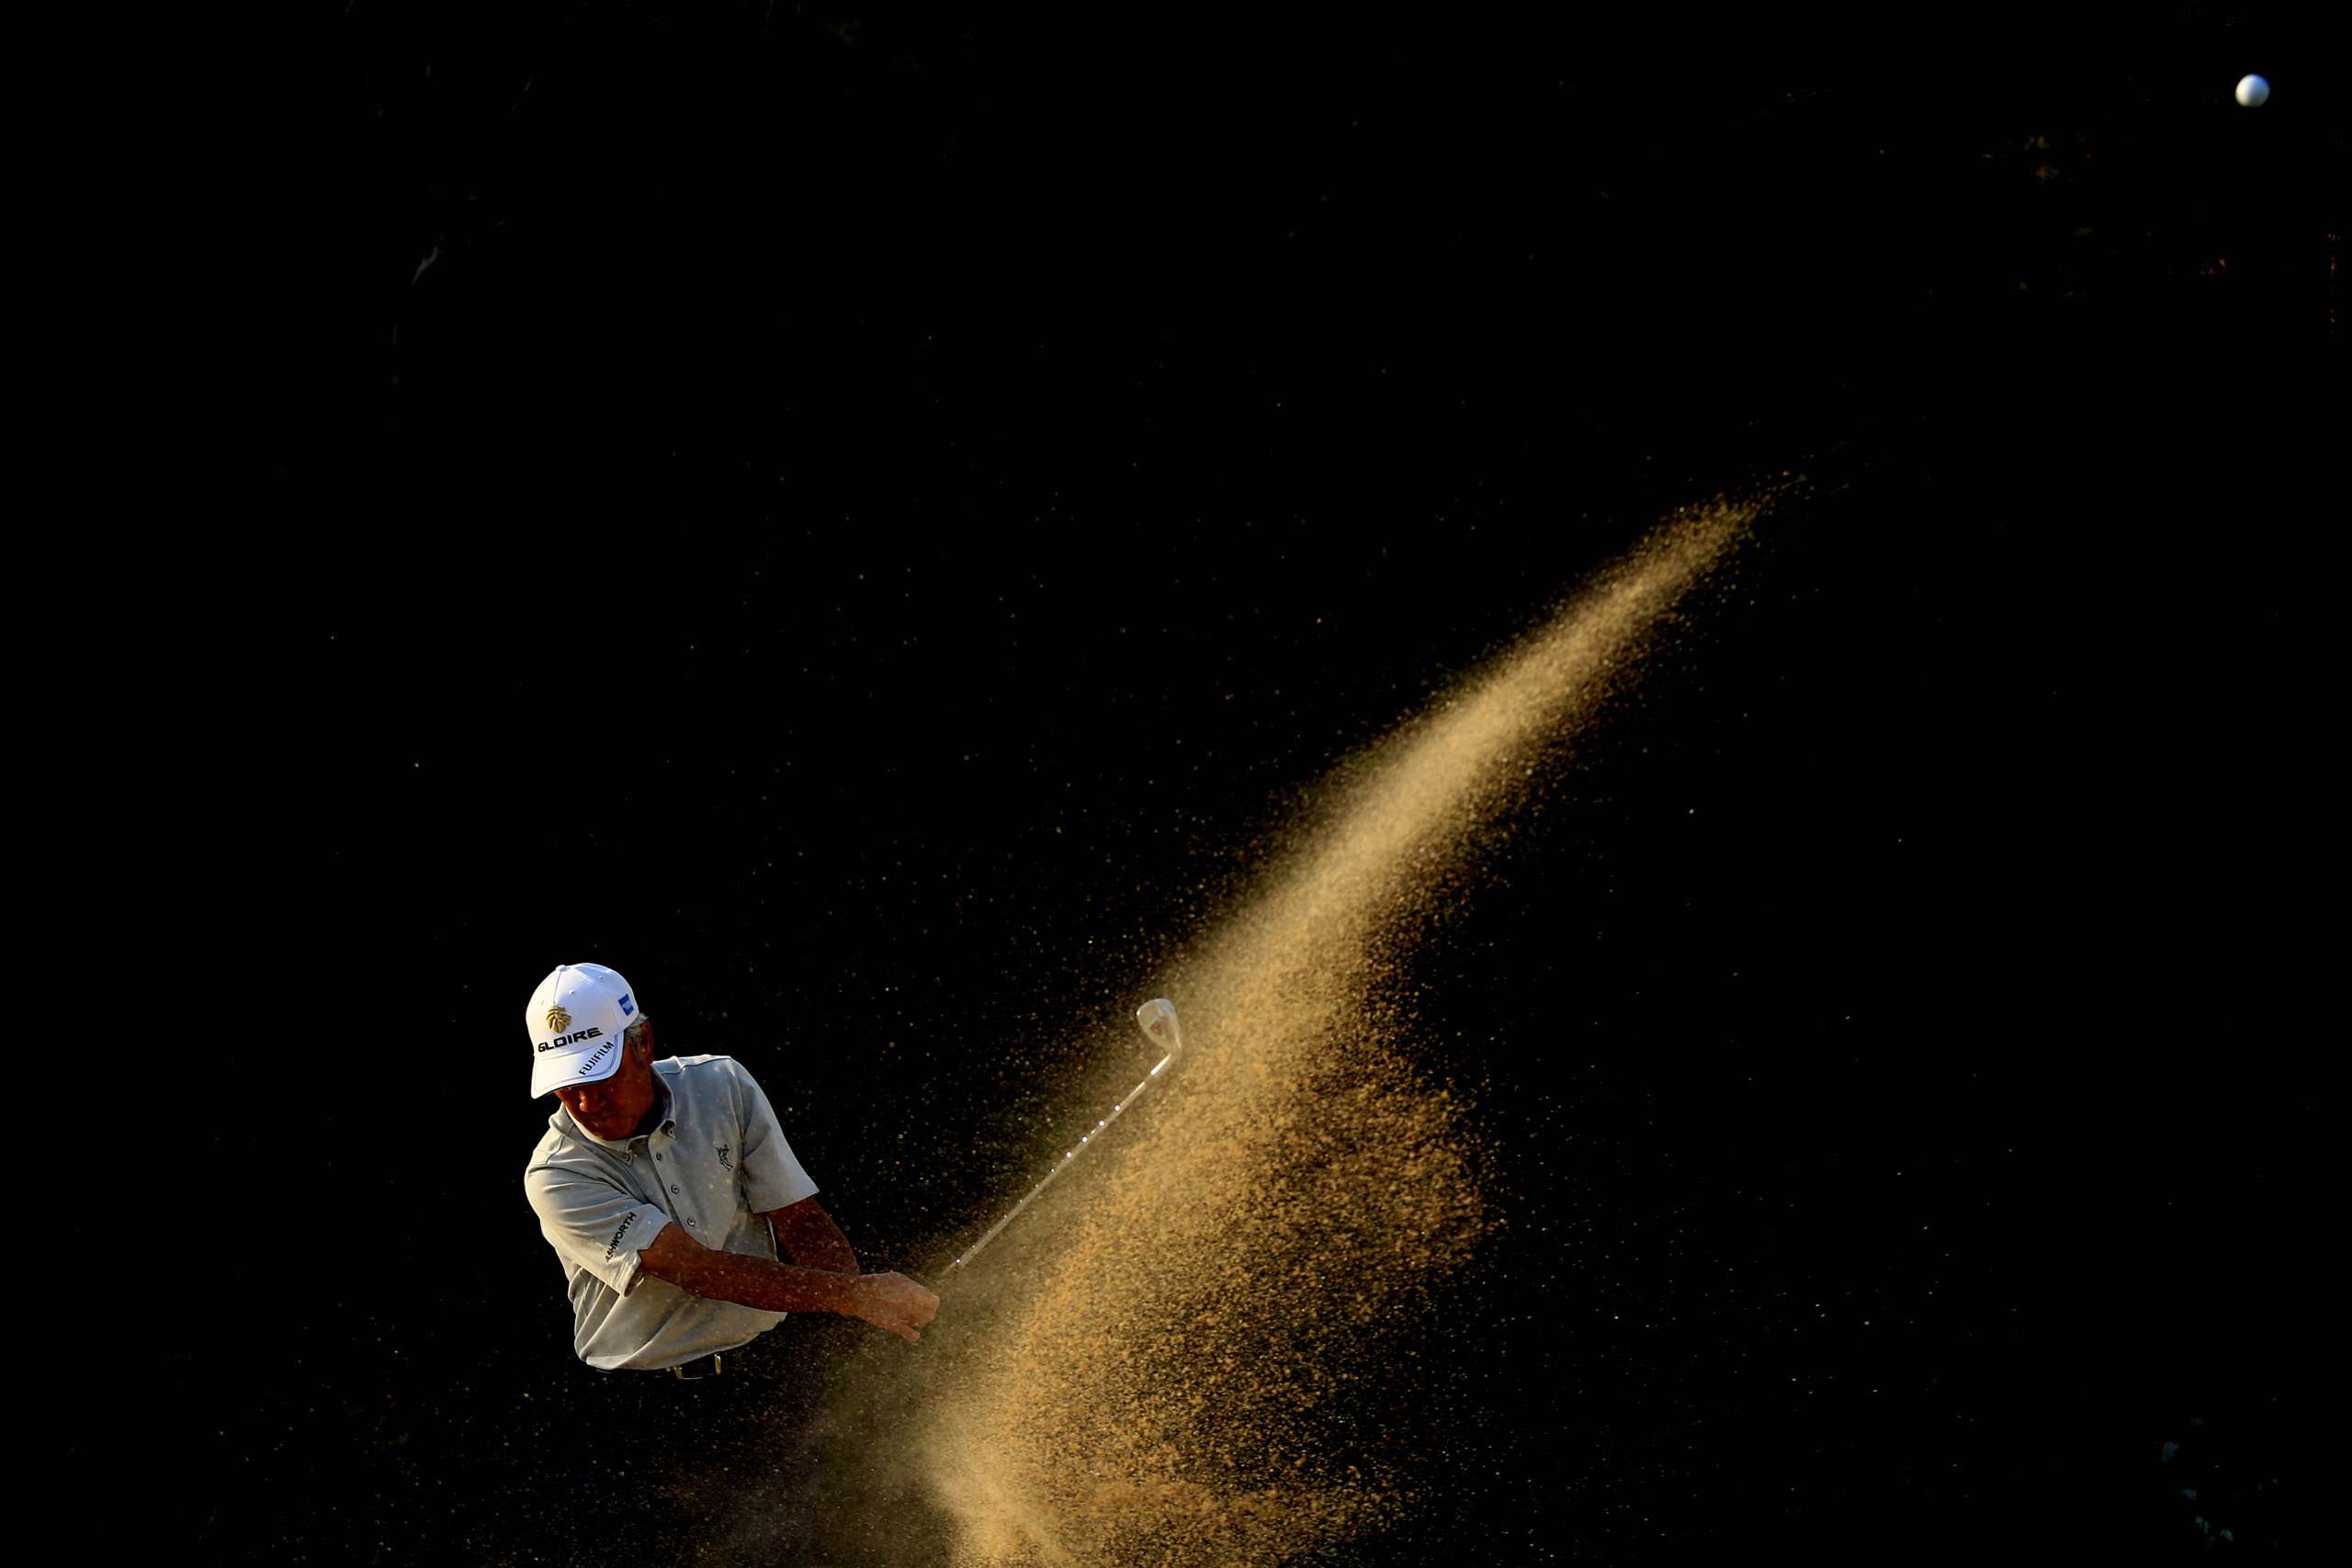 Aoki was known for his amazing bunker shots. An artist. The way the sand flew out was also art. Photo by Taku Miyamoto